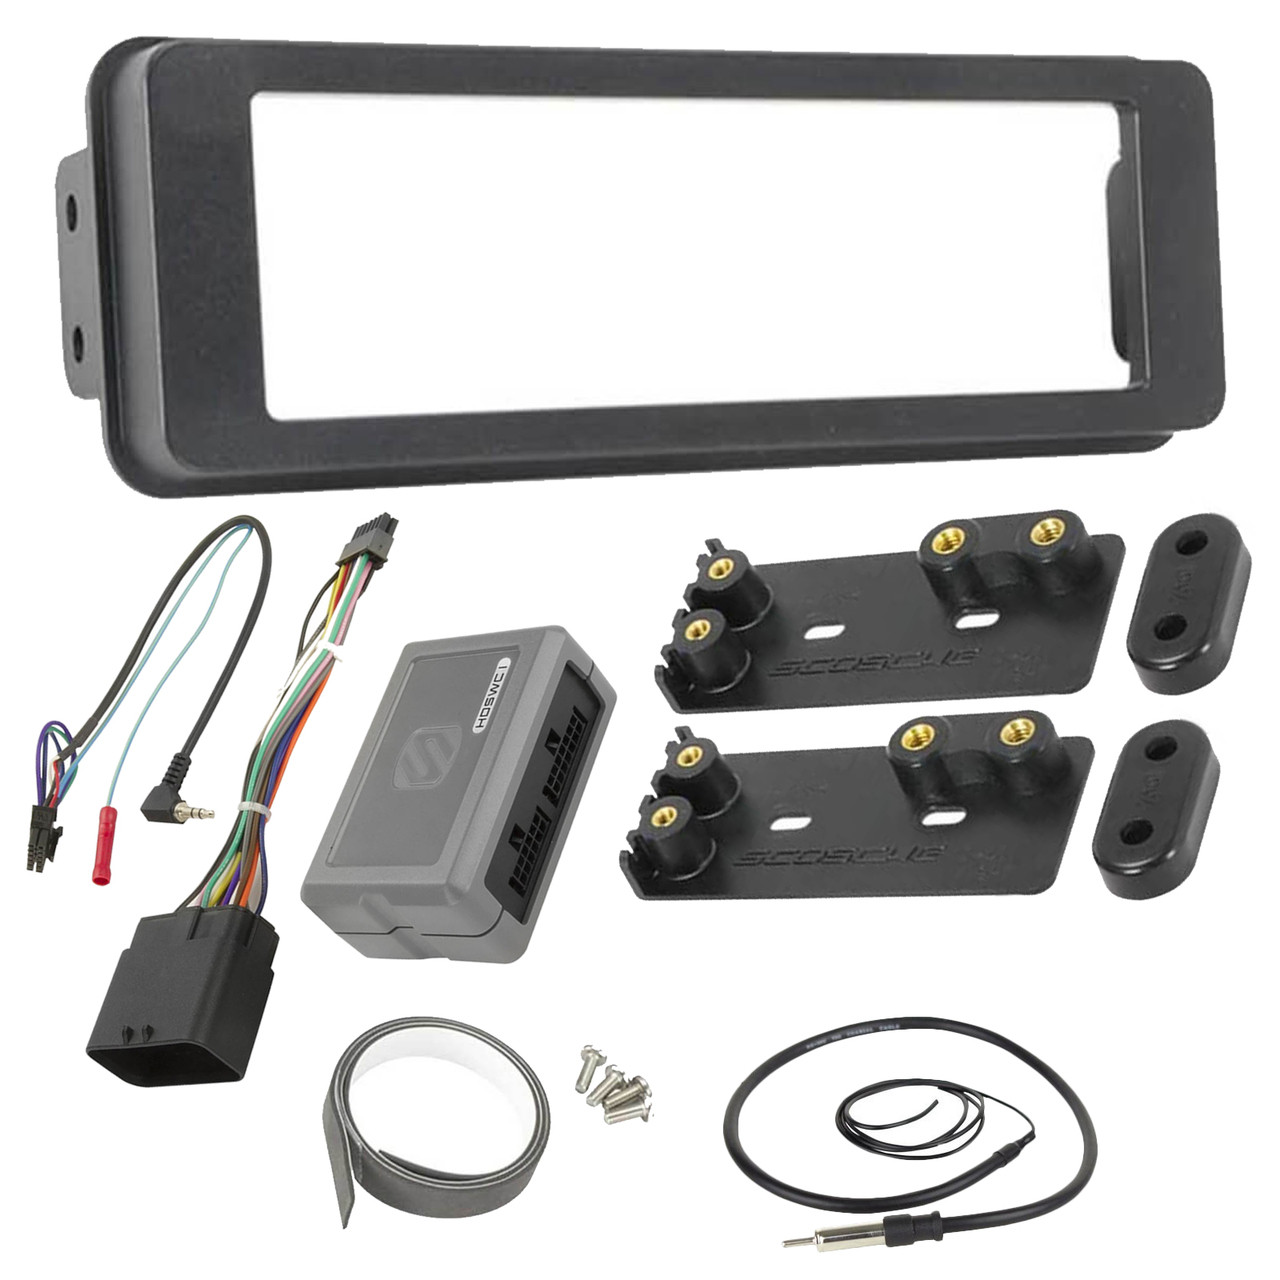 scosche hd7000b 1996 up harley davidson stereo install dash kit with 1992 s10 radio harness scosche wiring harness harley [ 1280 x 1280 Pixel ]